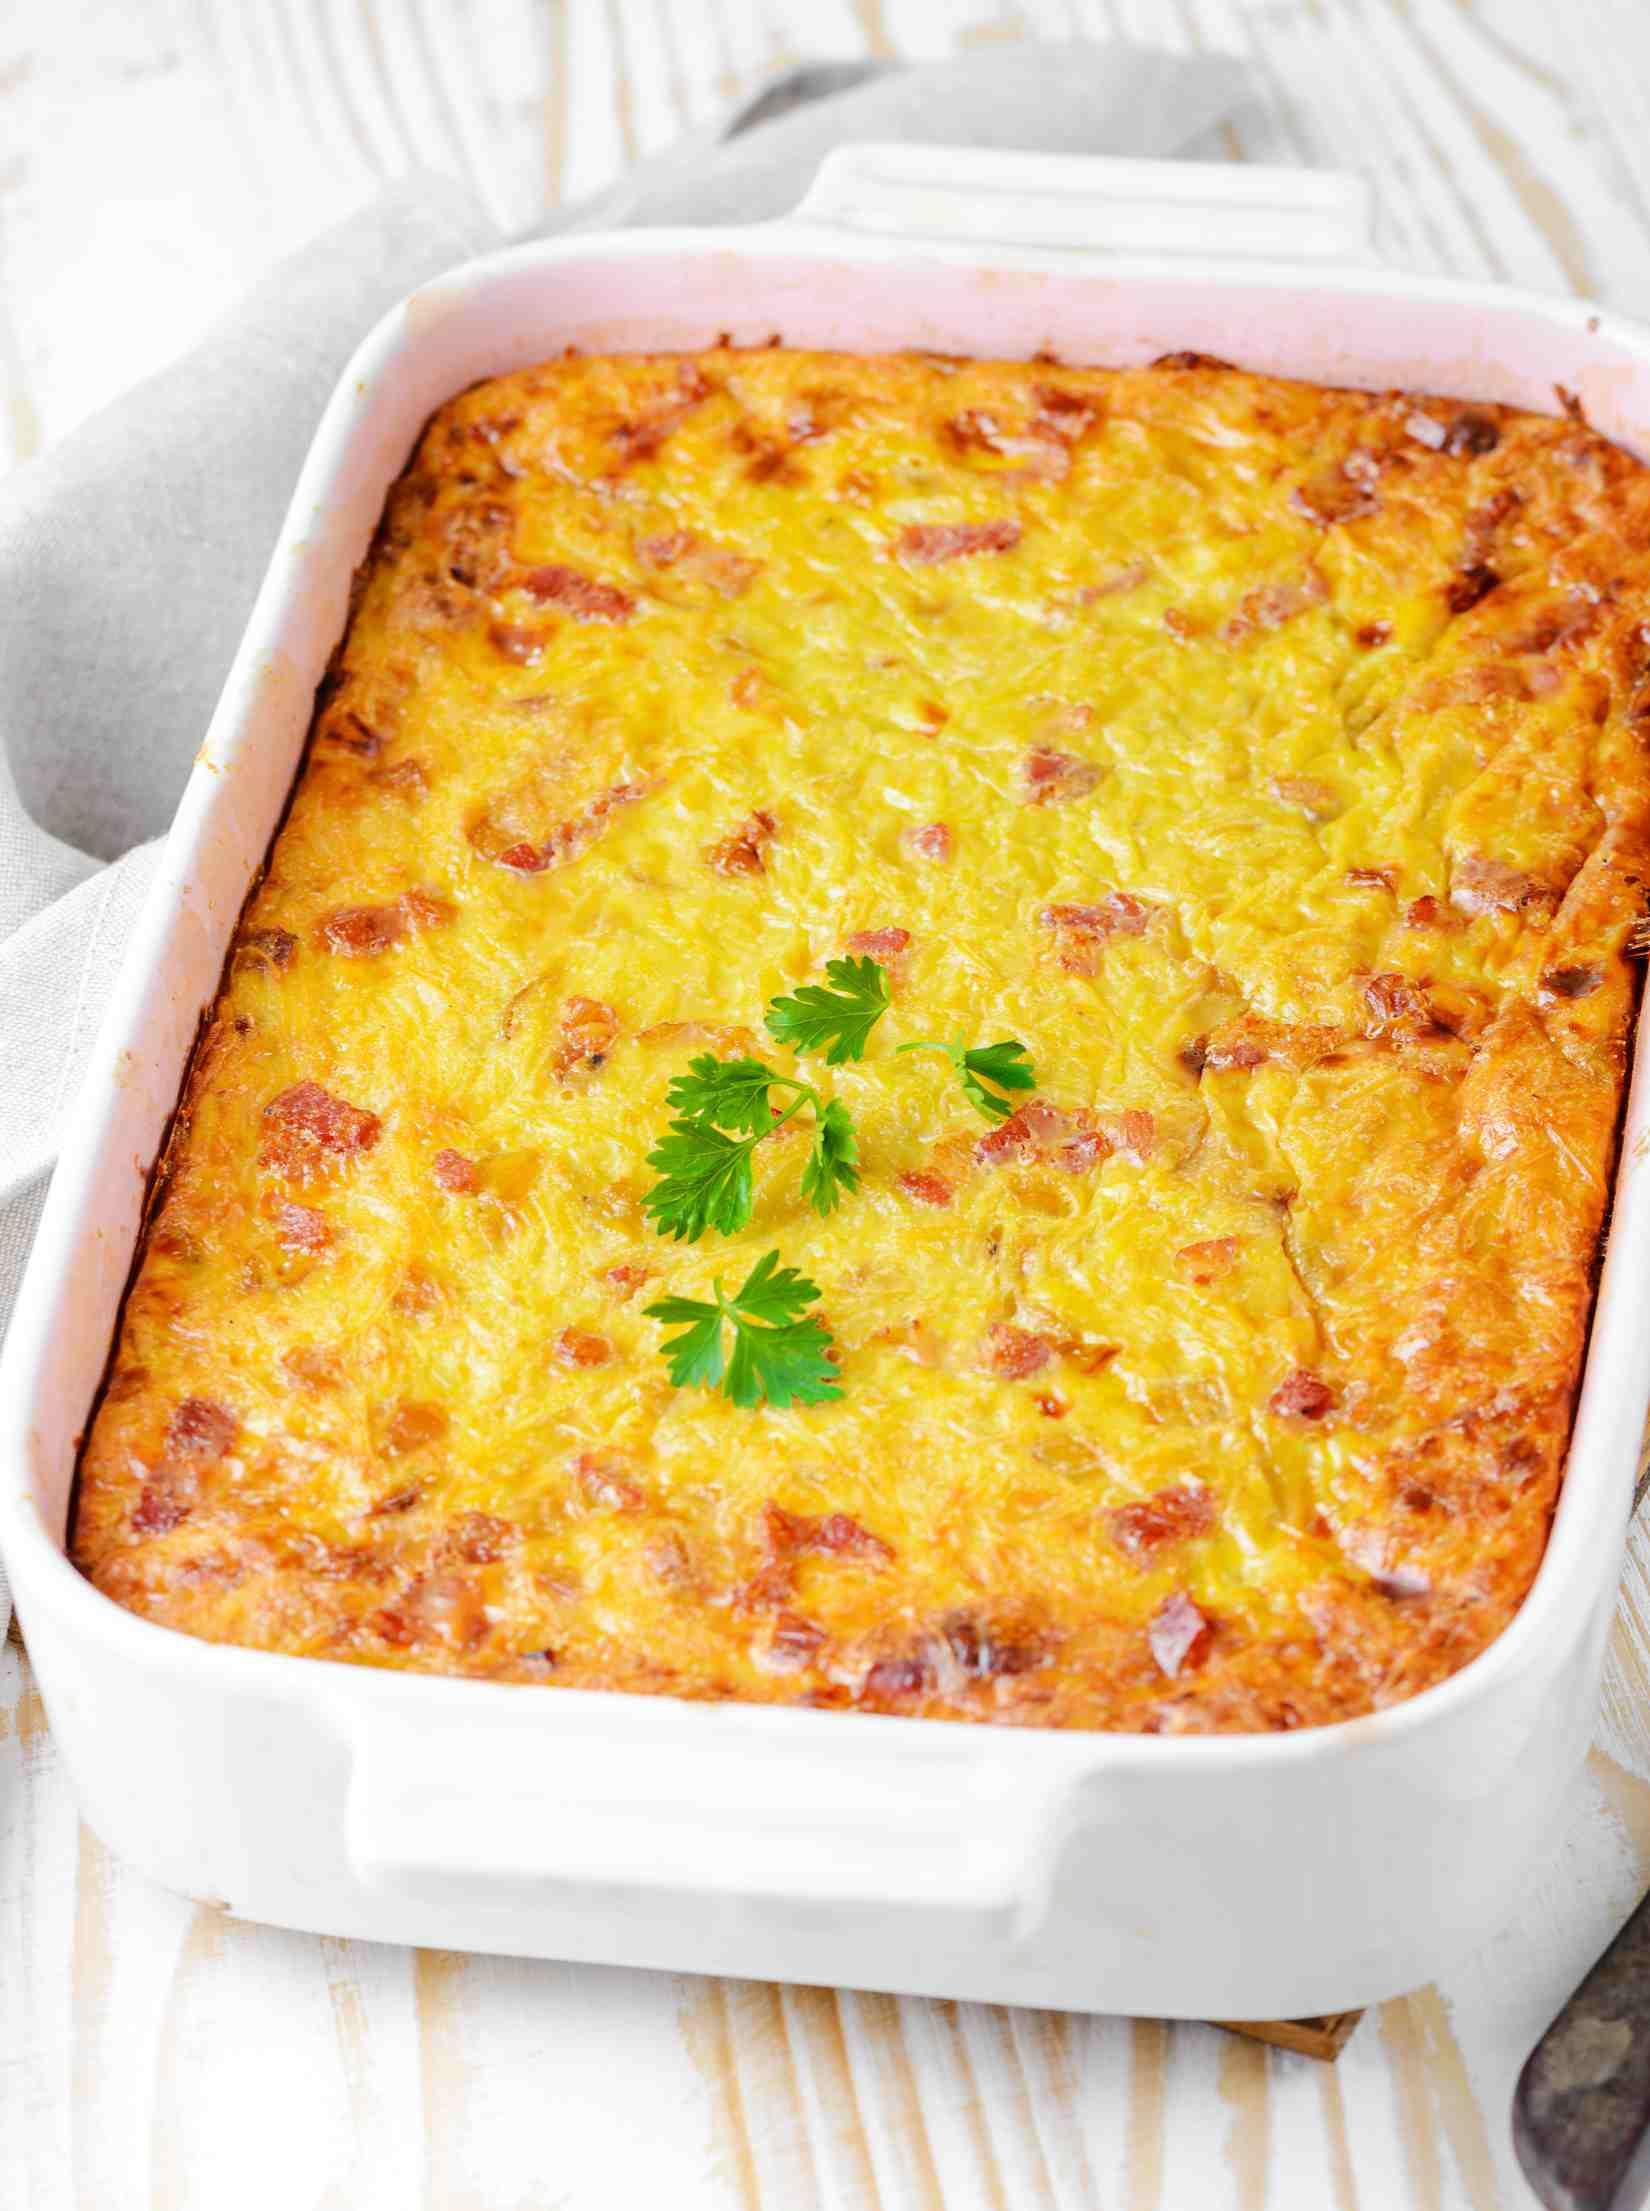 Lithuanian Savory Potato Pudding Known As Kugelis Is A National Dish Recipe Kugelis Recipe Potato Pudding Lithuanian Recipes